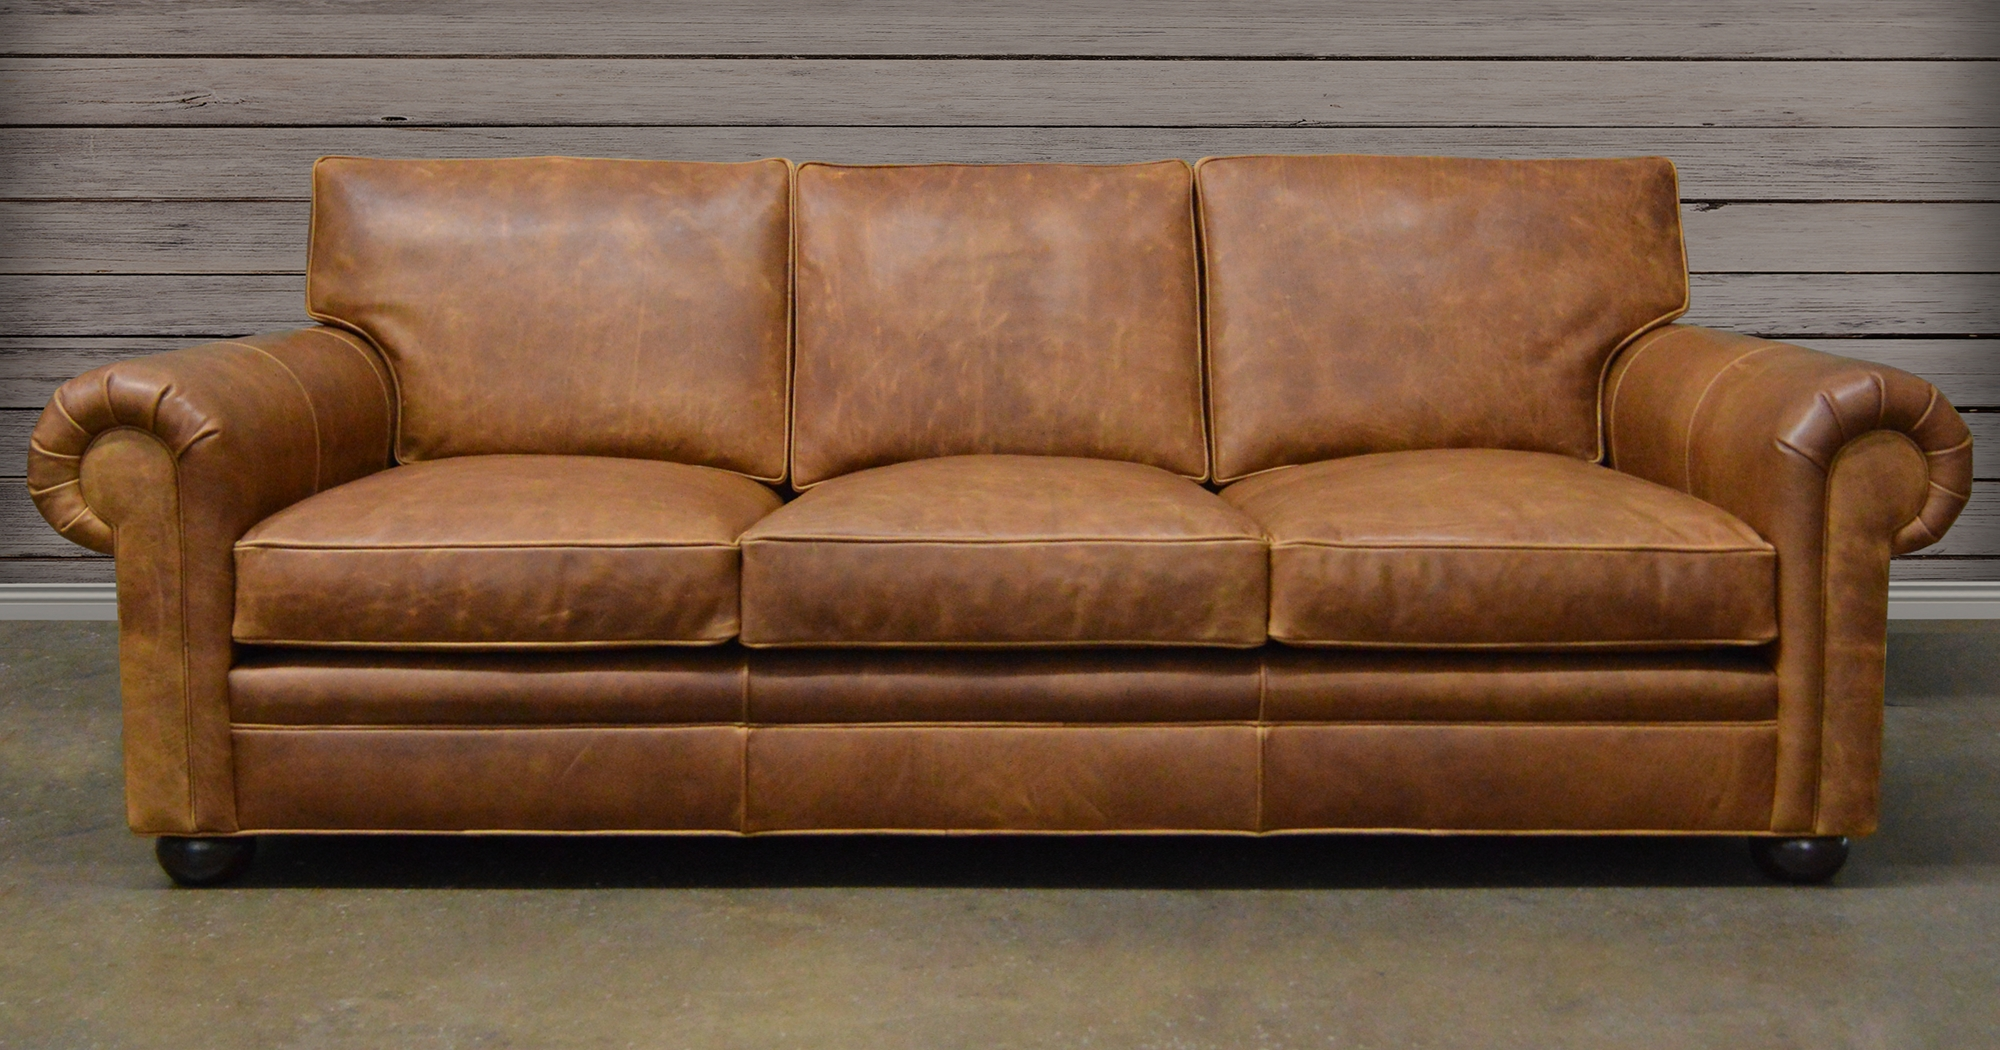 [%Sofa: Concepts Light Brown Leather Sofa 100% Leather Sofas, Ashley Throughout Well Known Light Tan Leather Sofas|Light Tan Leather Sofas Throughout 2019 Sofa: Concepts Light Brown Leather Sofa 100% Leather Sofas, Ashley|Trendy Light Tan Leather Sofas Throughout Sofa: Concepts Light Brown Leather Sofa 100% Leather Sofas, Ashley|Most Recently Released Sofa: Concepts Light Brown Leather Sofa 100% Leather Sofas, Ashley Regarding Light Tan Leather Sofas%] (Gallery 4 of 20)